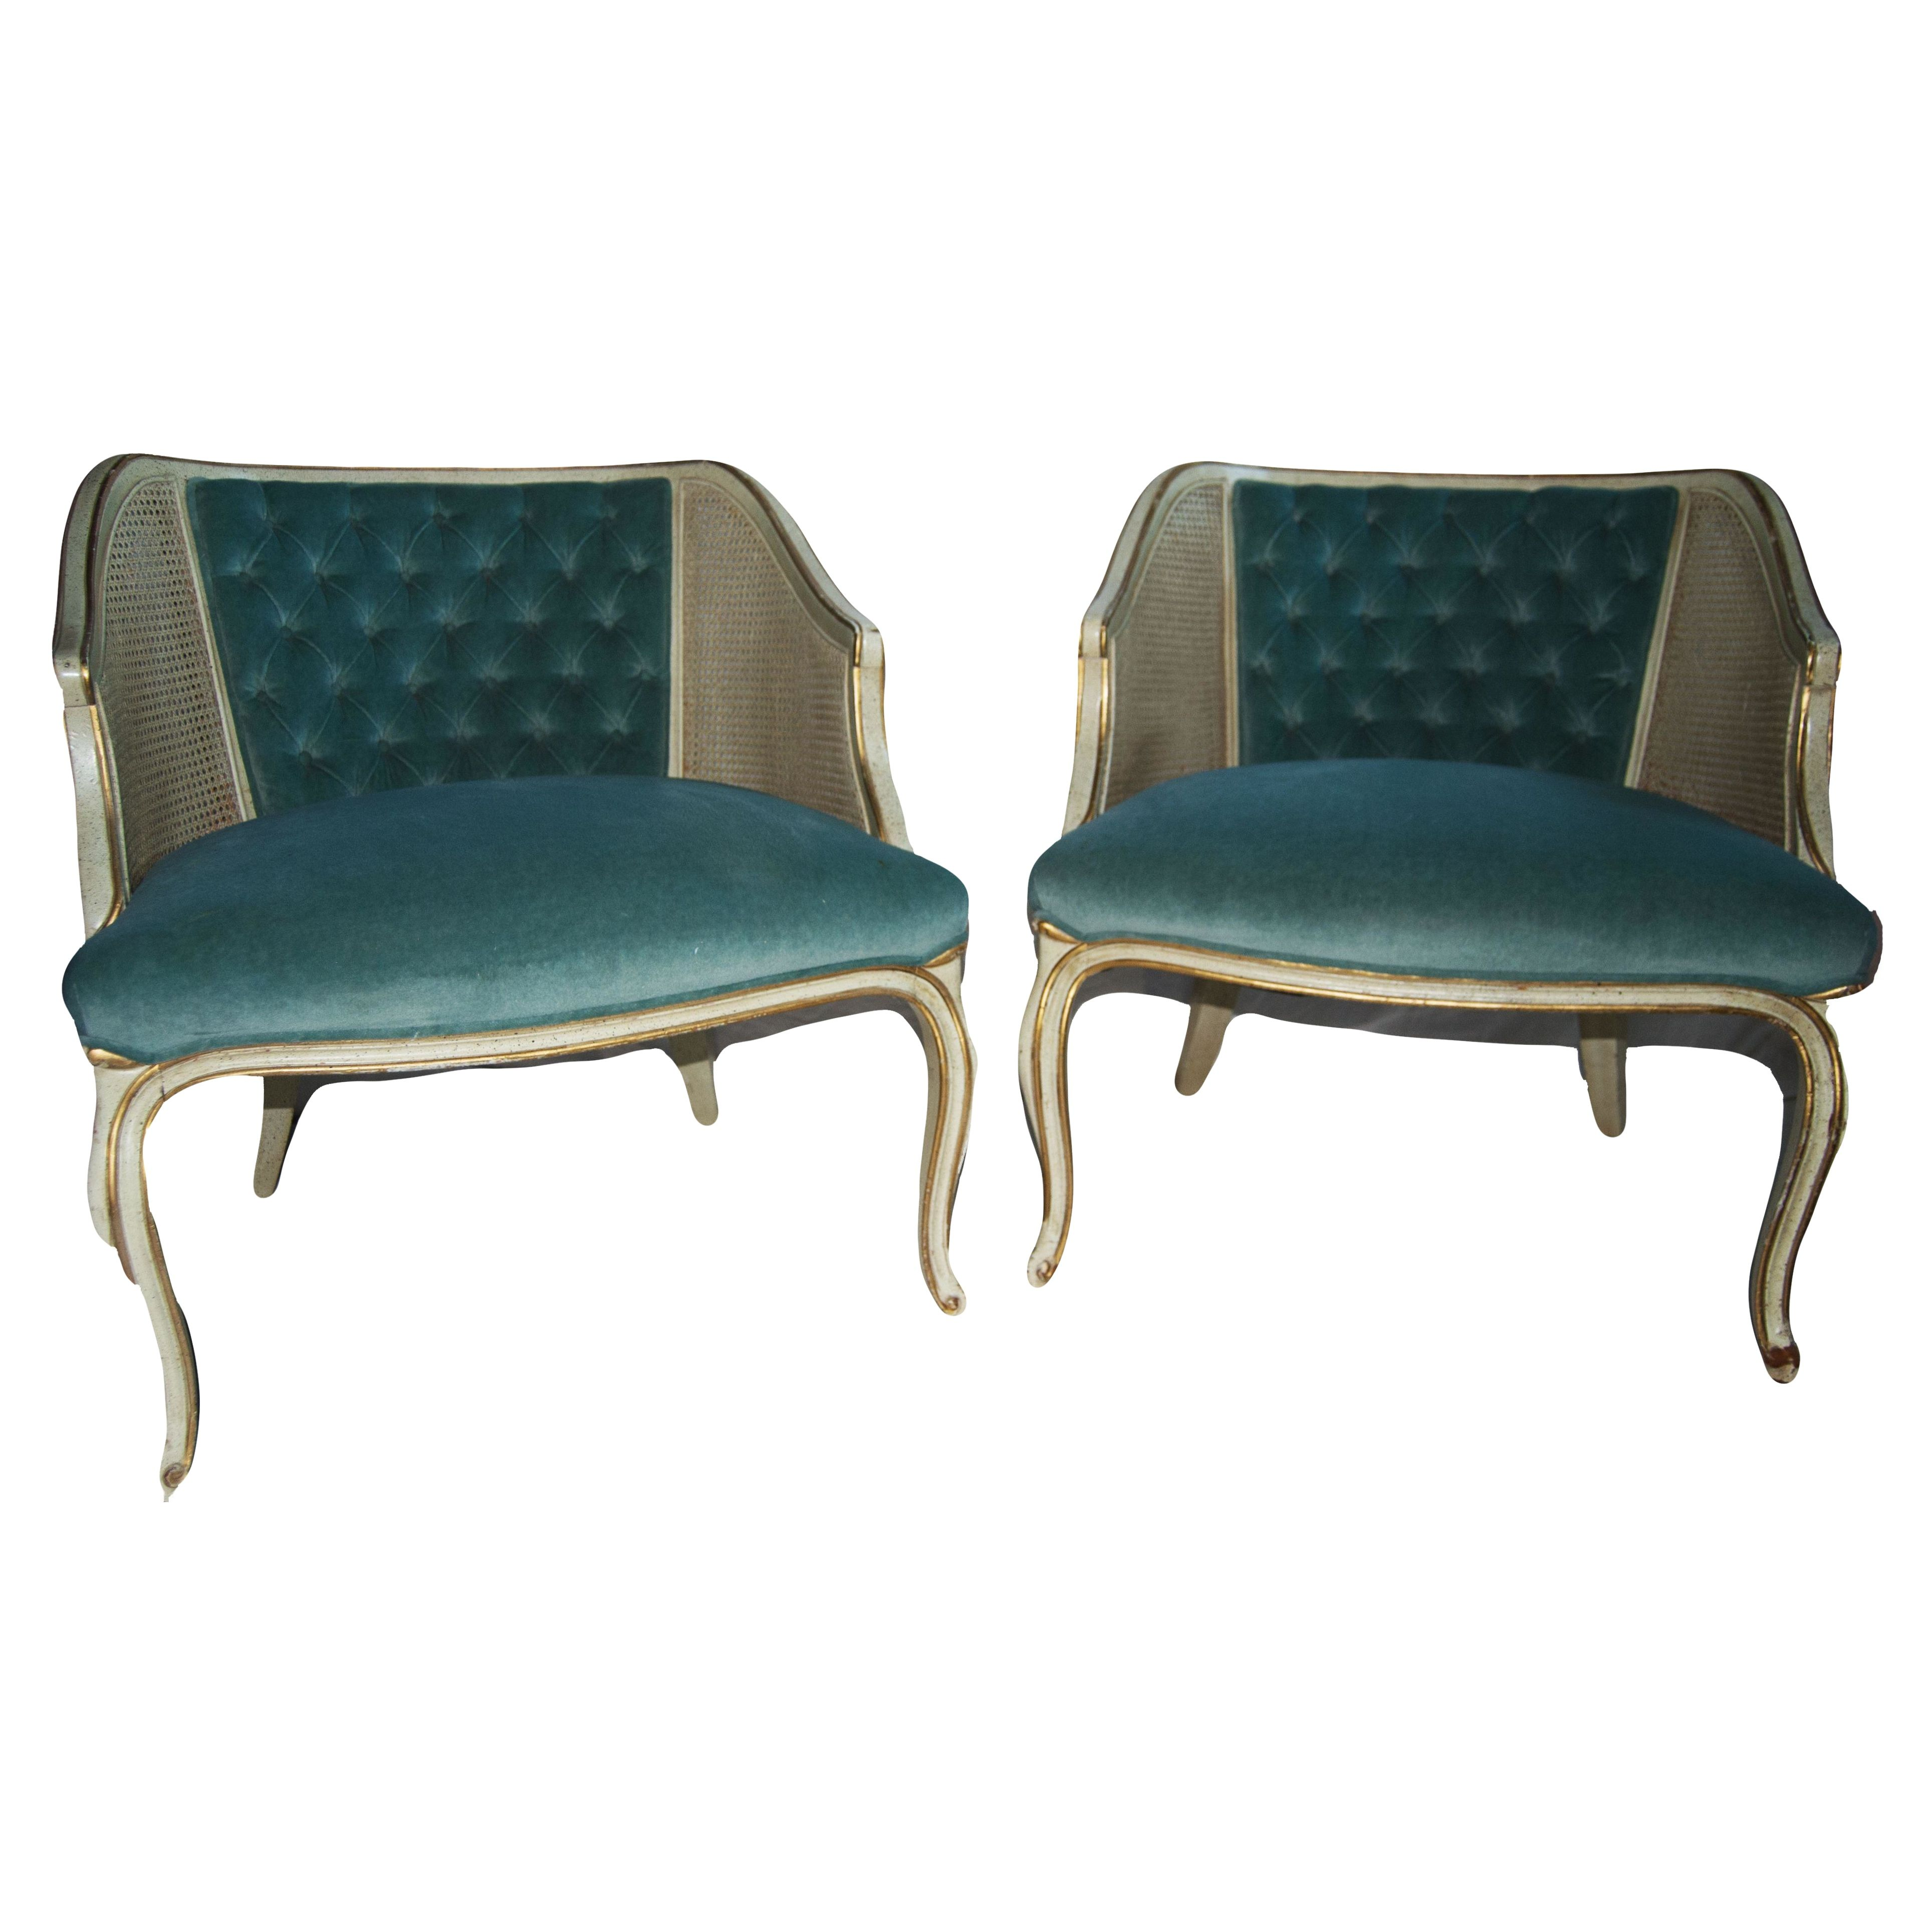 Pair French Louis Xv Style Painted Bergere Chairs Chairish